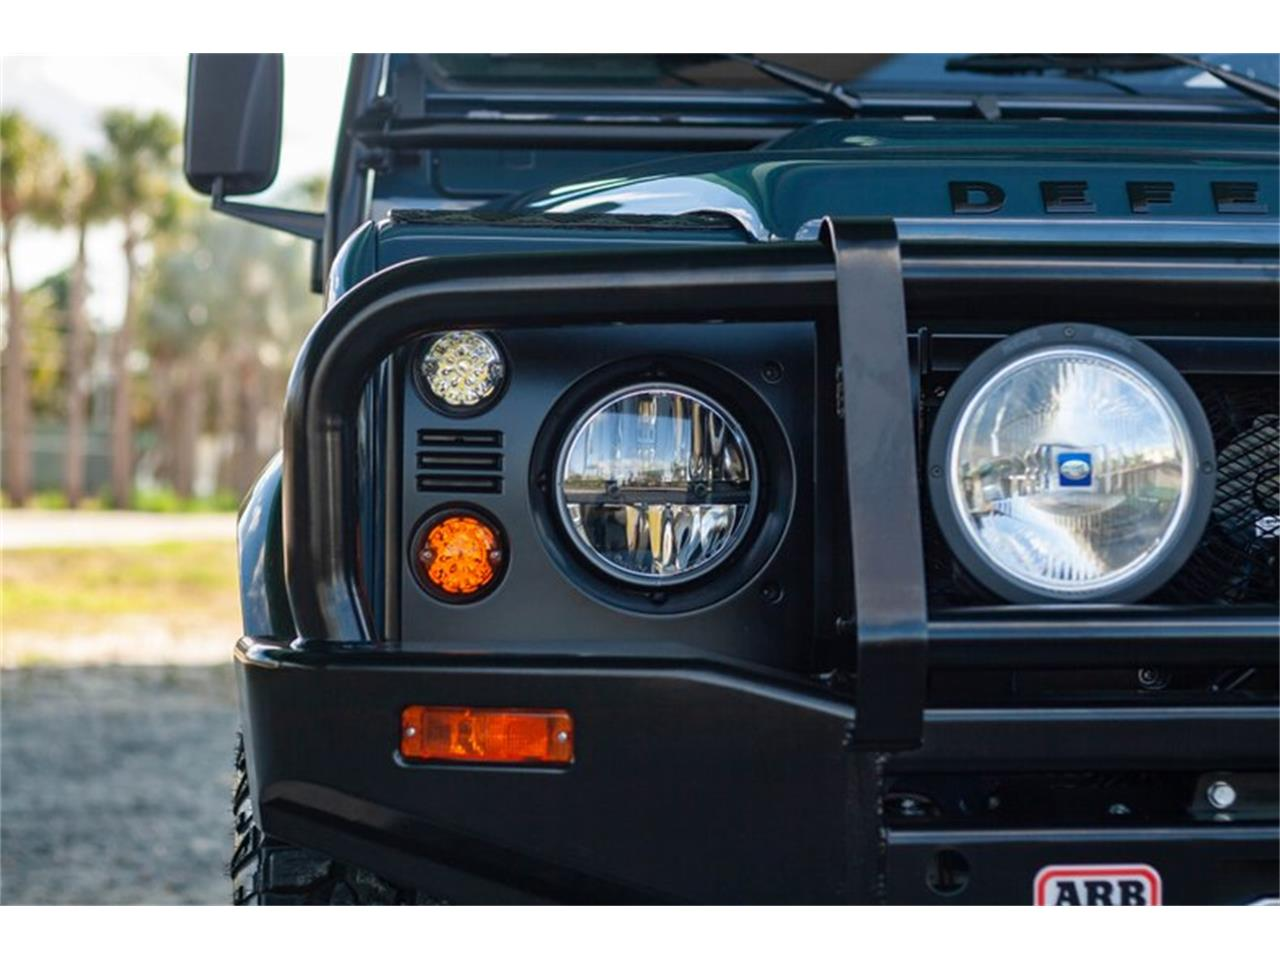 1997 Land Rover Defender for sale in Delray Beach, FL – photo 10